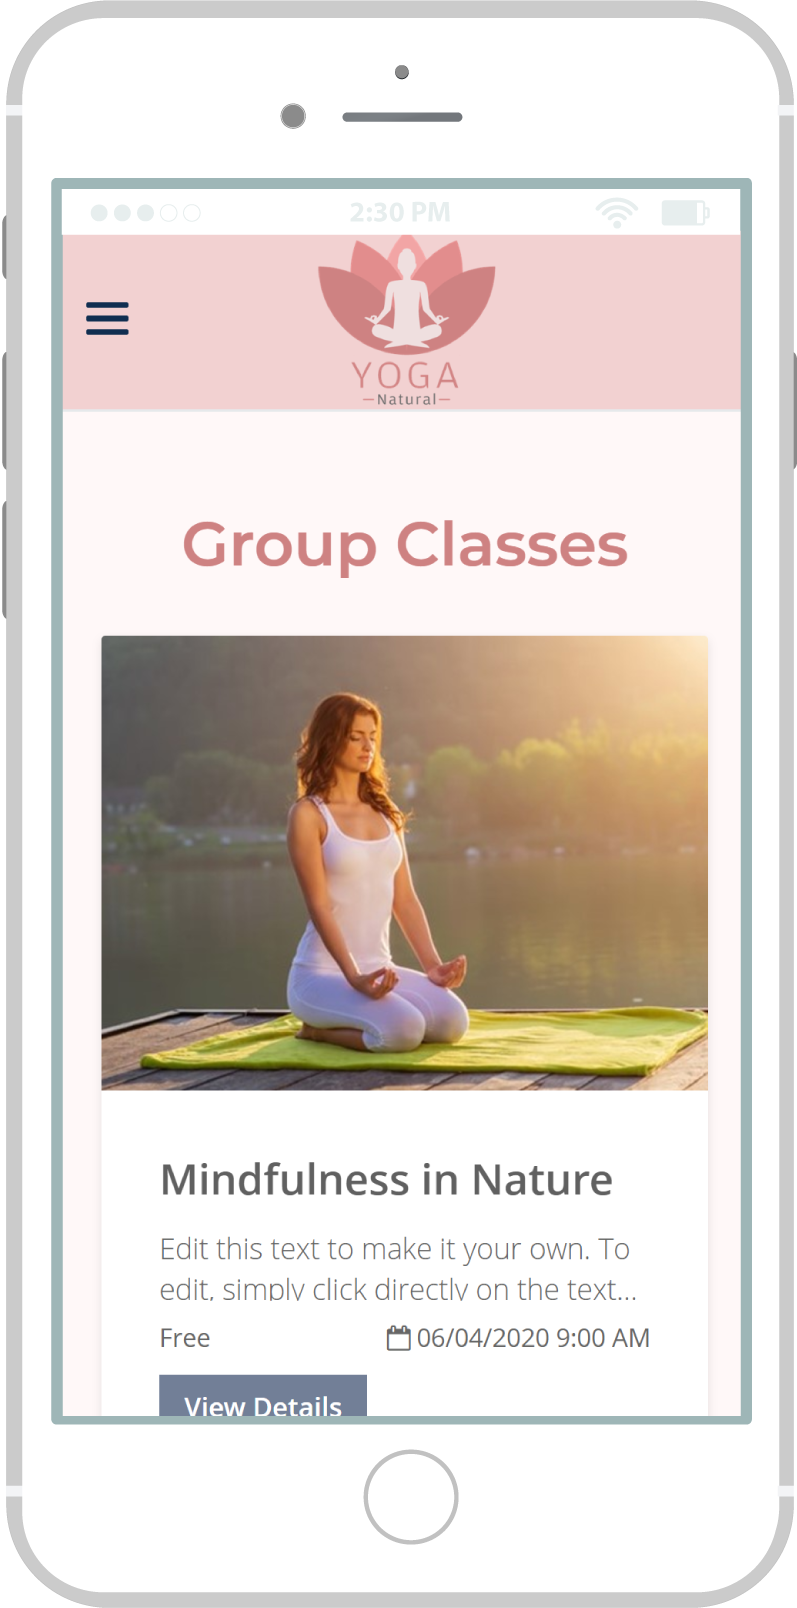 All-In-One Website To Sell Your Yoga Classes Online - Yoga Natural Mobile View 3 Example